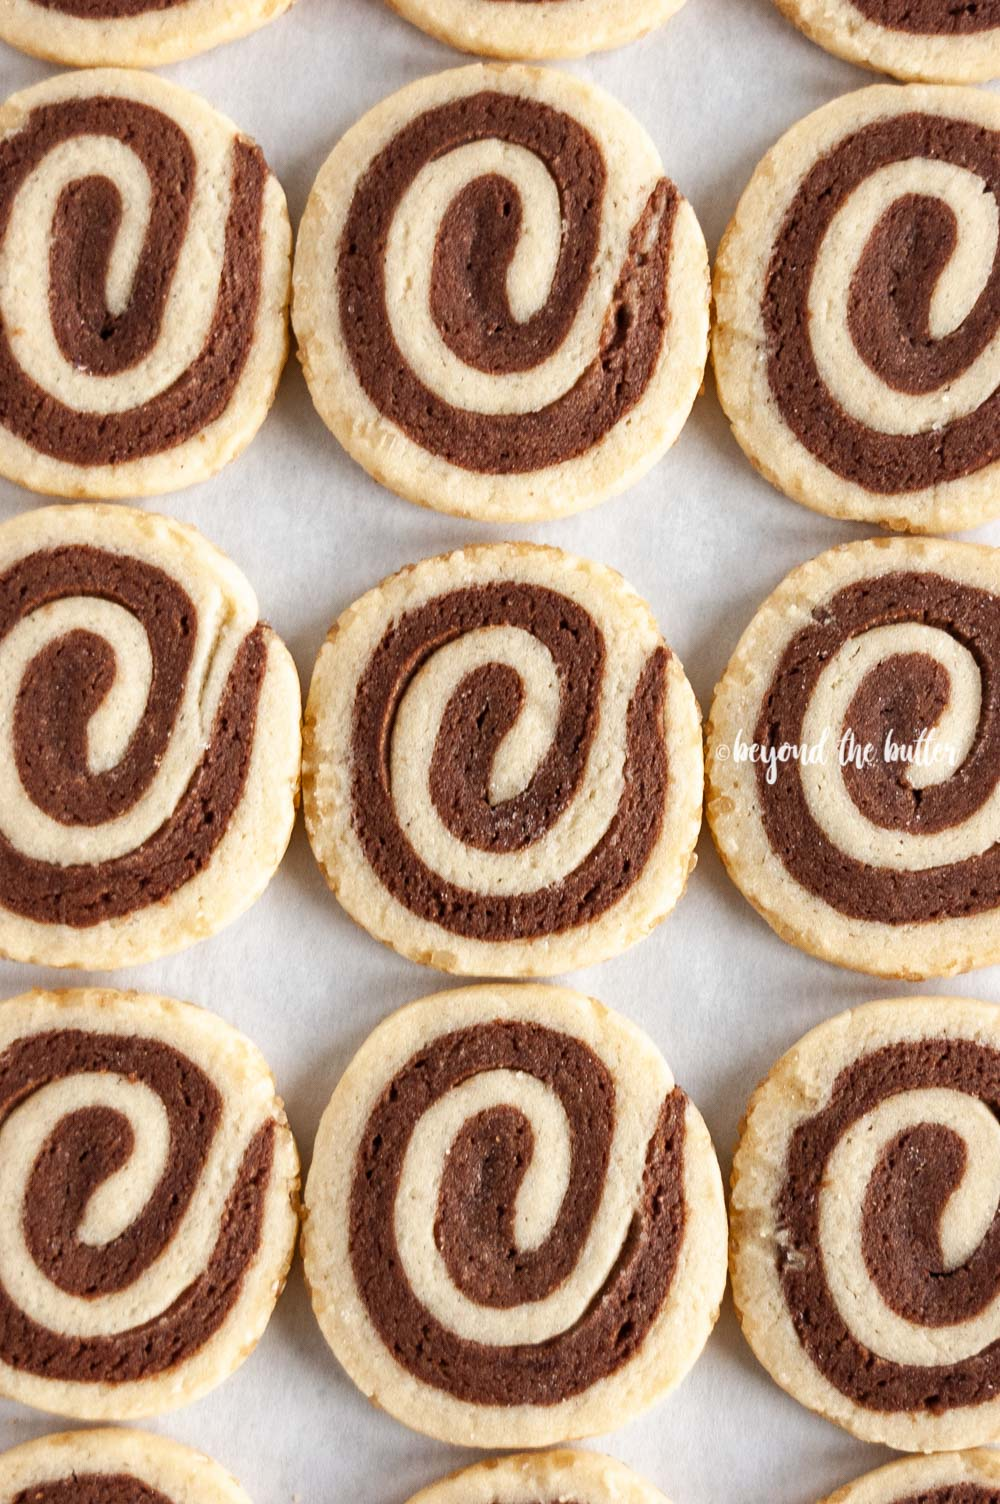 Overhead image of Chocolate Pinwheel Cookies in rows | All images © Beyond the Butter™